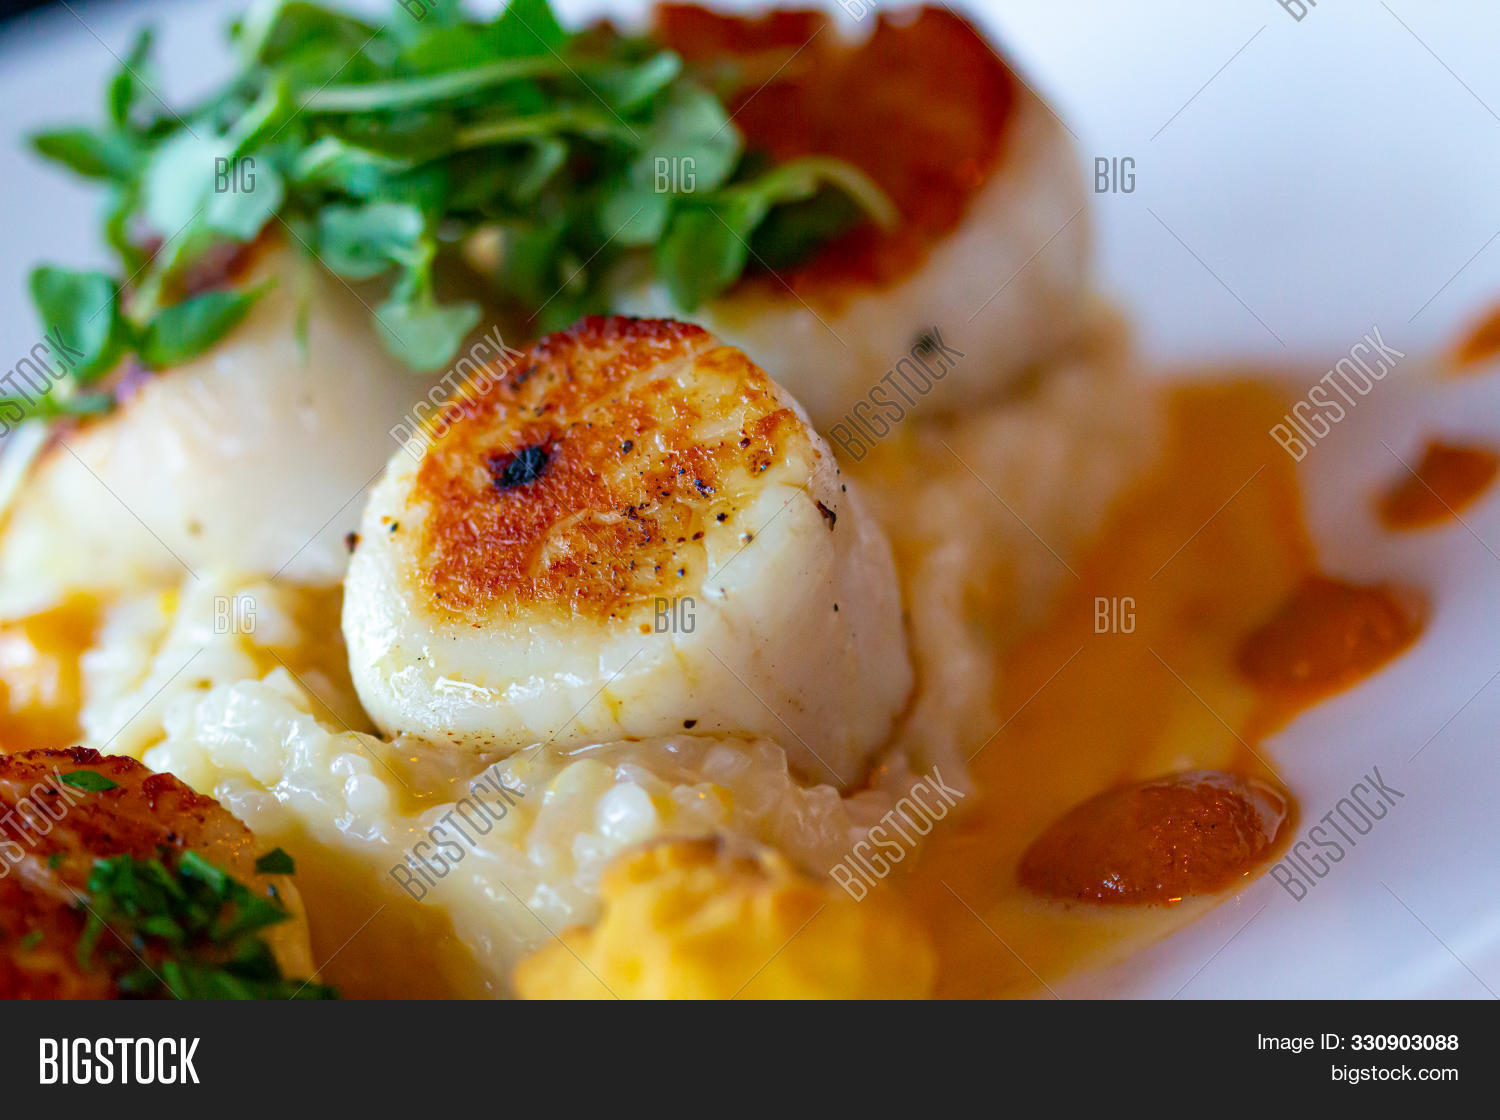 appetizing,brown,closeup,cook,cooked,cookery,cooking,delicious,dinner,dish,eat,eating,england,fish,food,fresh,fried,garnish,garnished,gourmet,greens,grilled,herb,horizontal,hot,lunch,meal,new,ocean,orange,pan,plate,portion,prepared,reduction,sauce,sauteed,scallop,scorching,sea,seafood,seared,shell,shellfish,starter,taste,tasty,usa,white,yellow